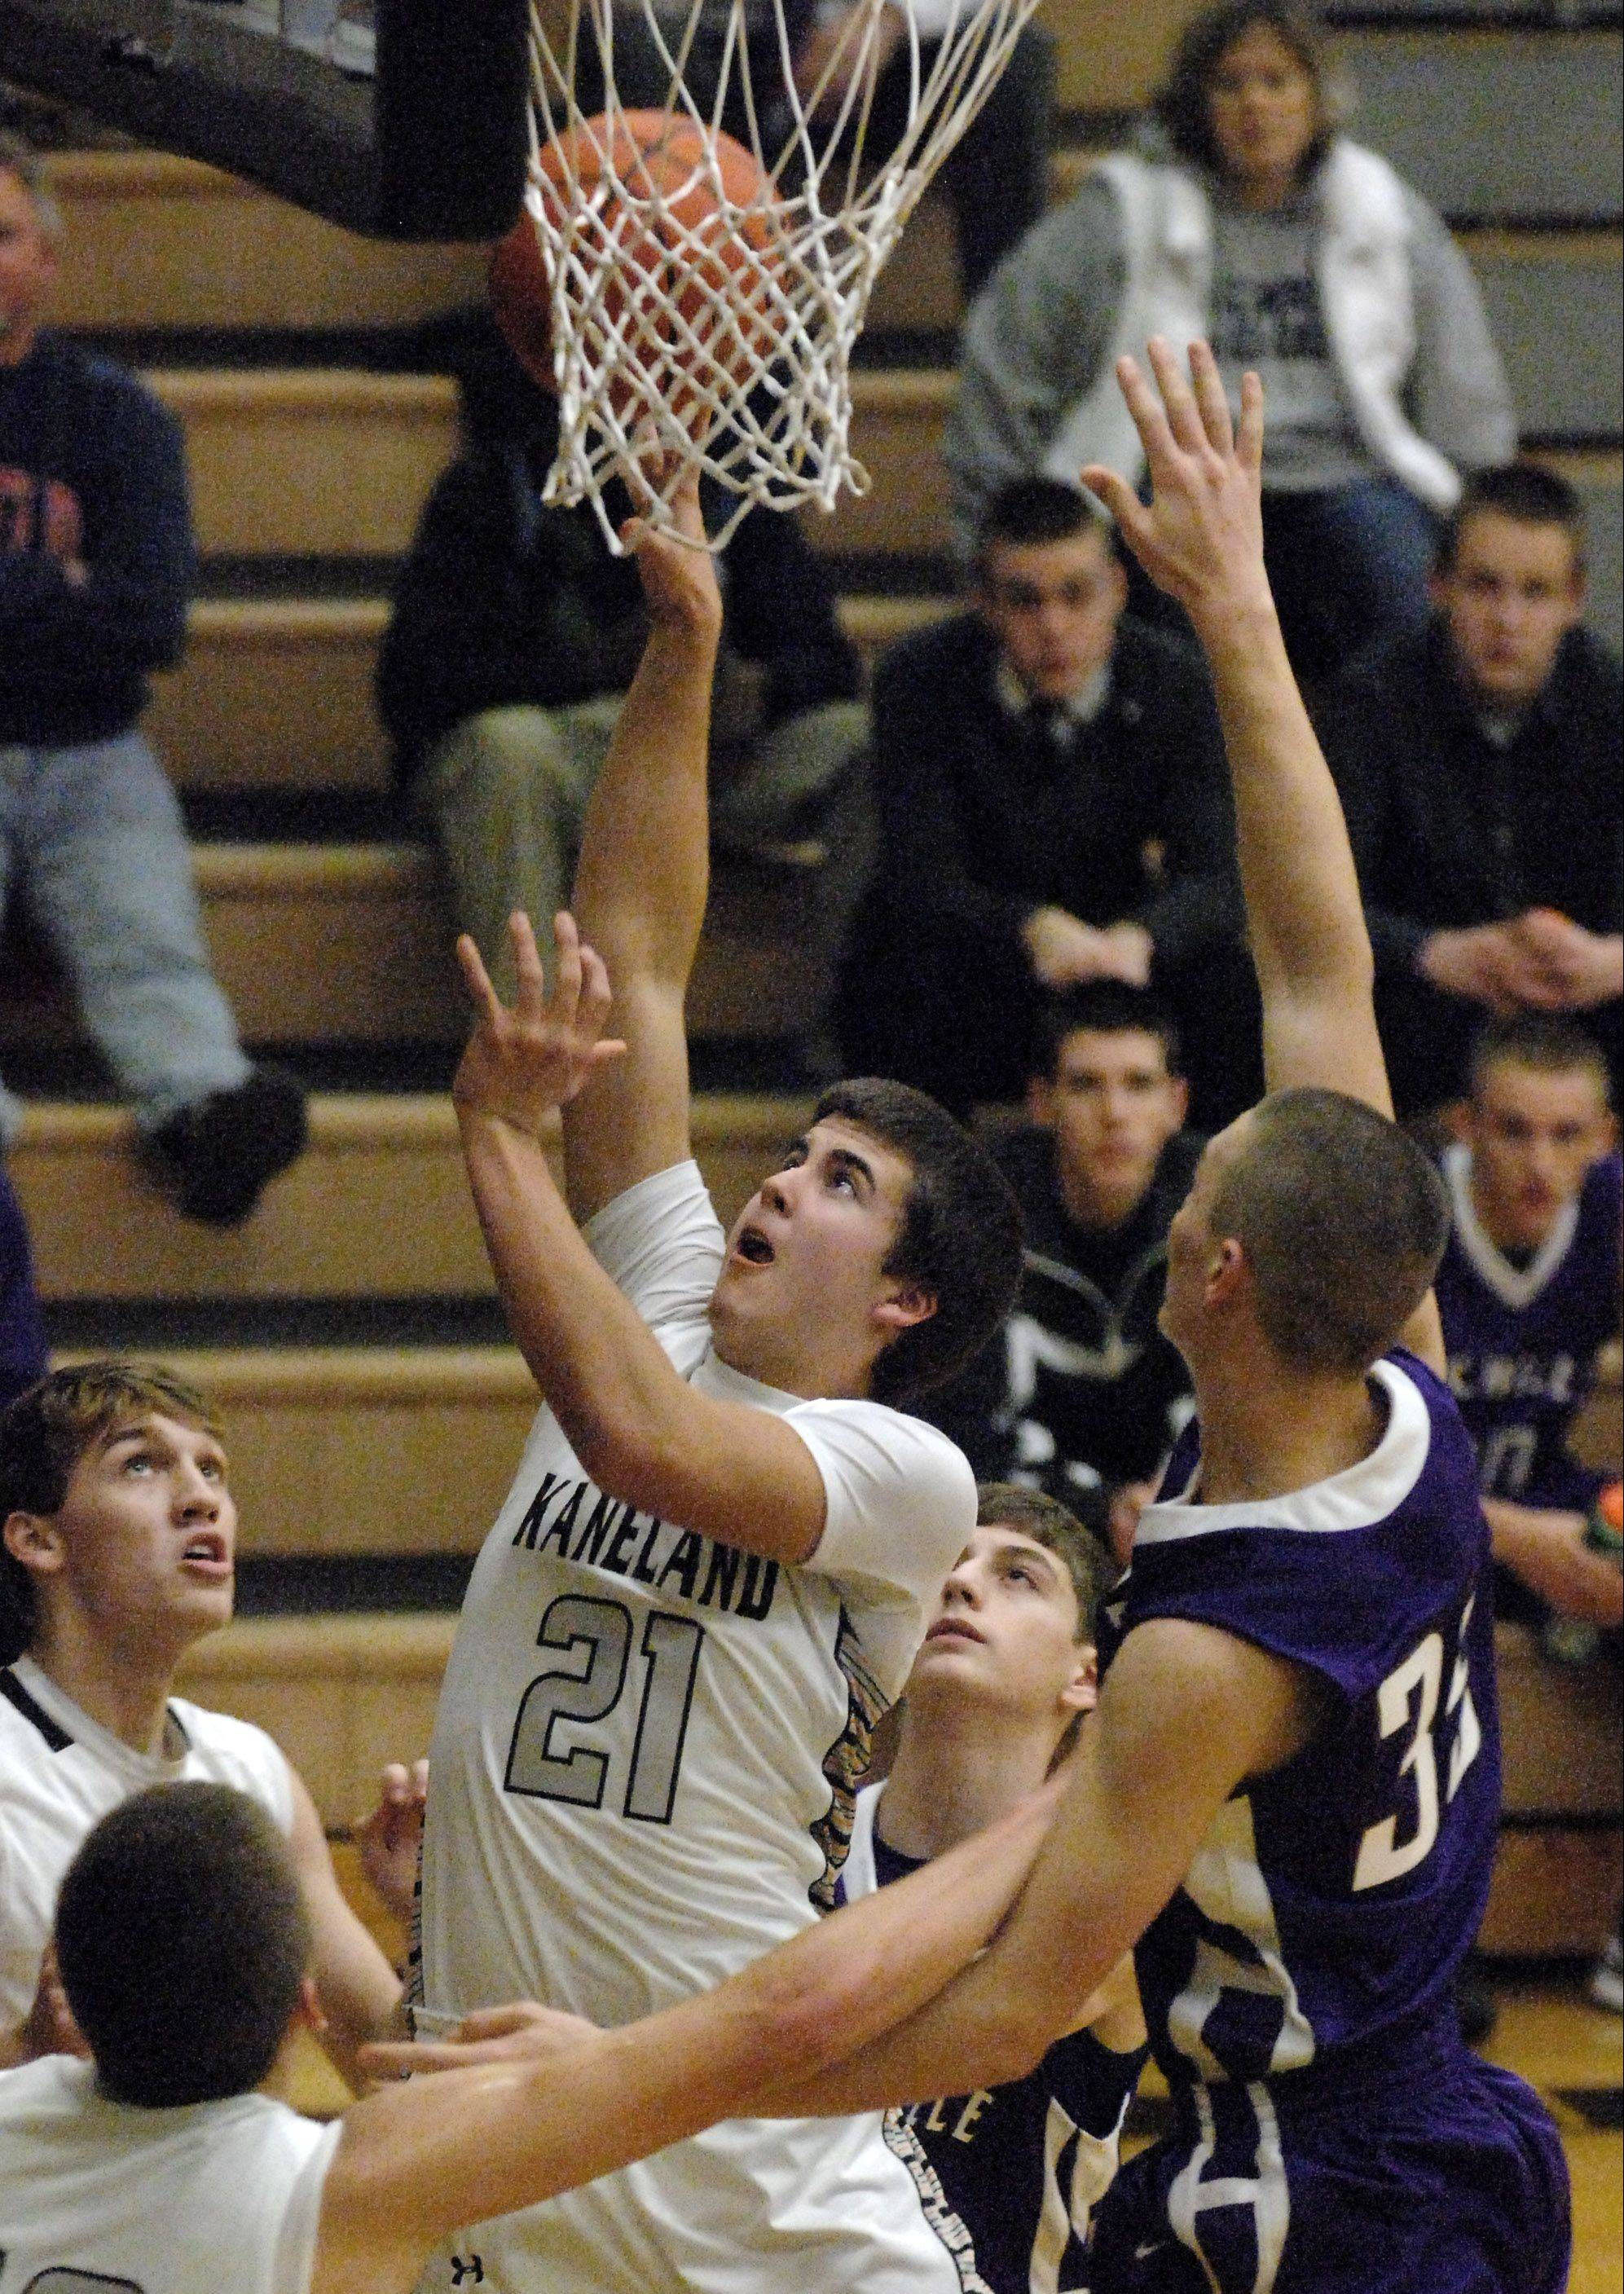 Kaneland's Tom Van Bogaert puts up a shot in the lane against Rochelle during Thursday's game in Maple Park.